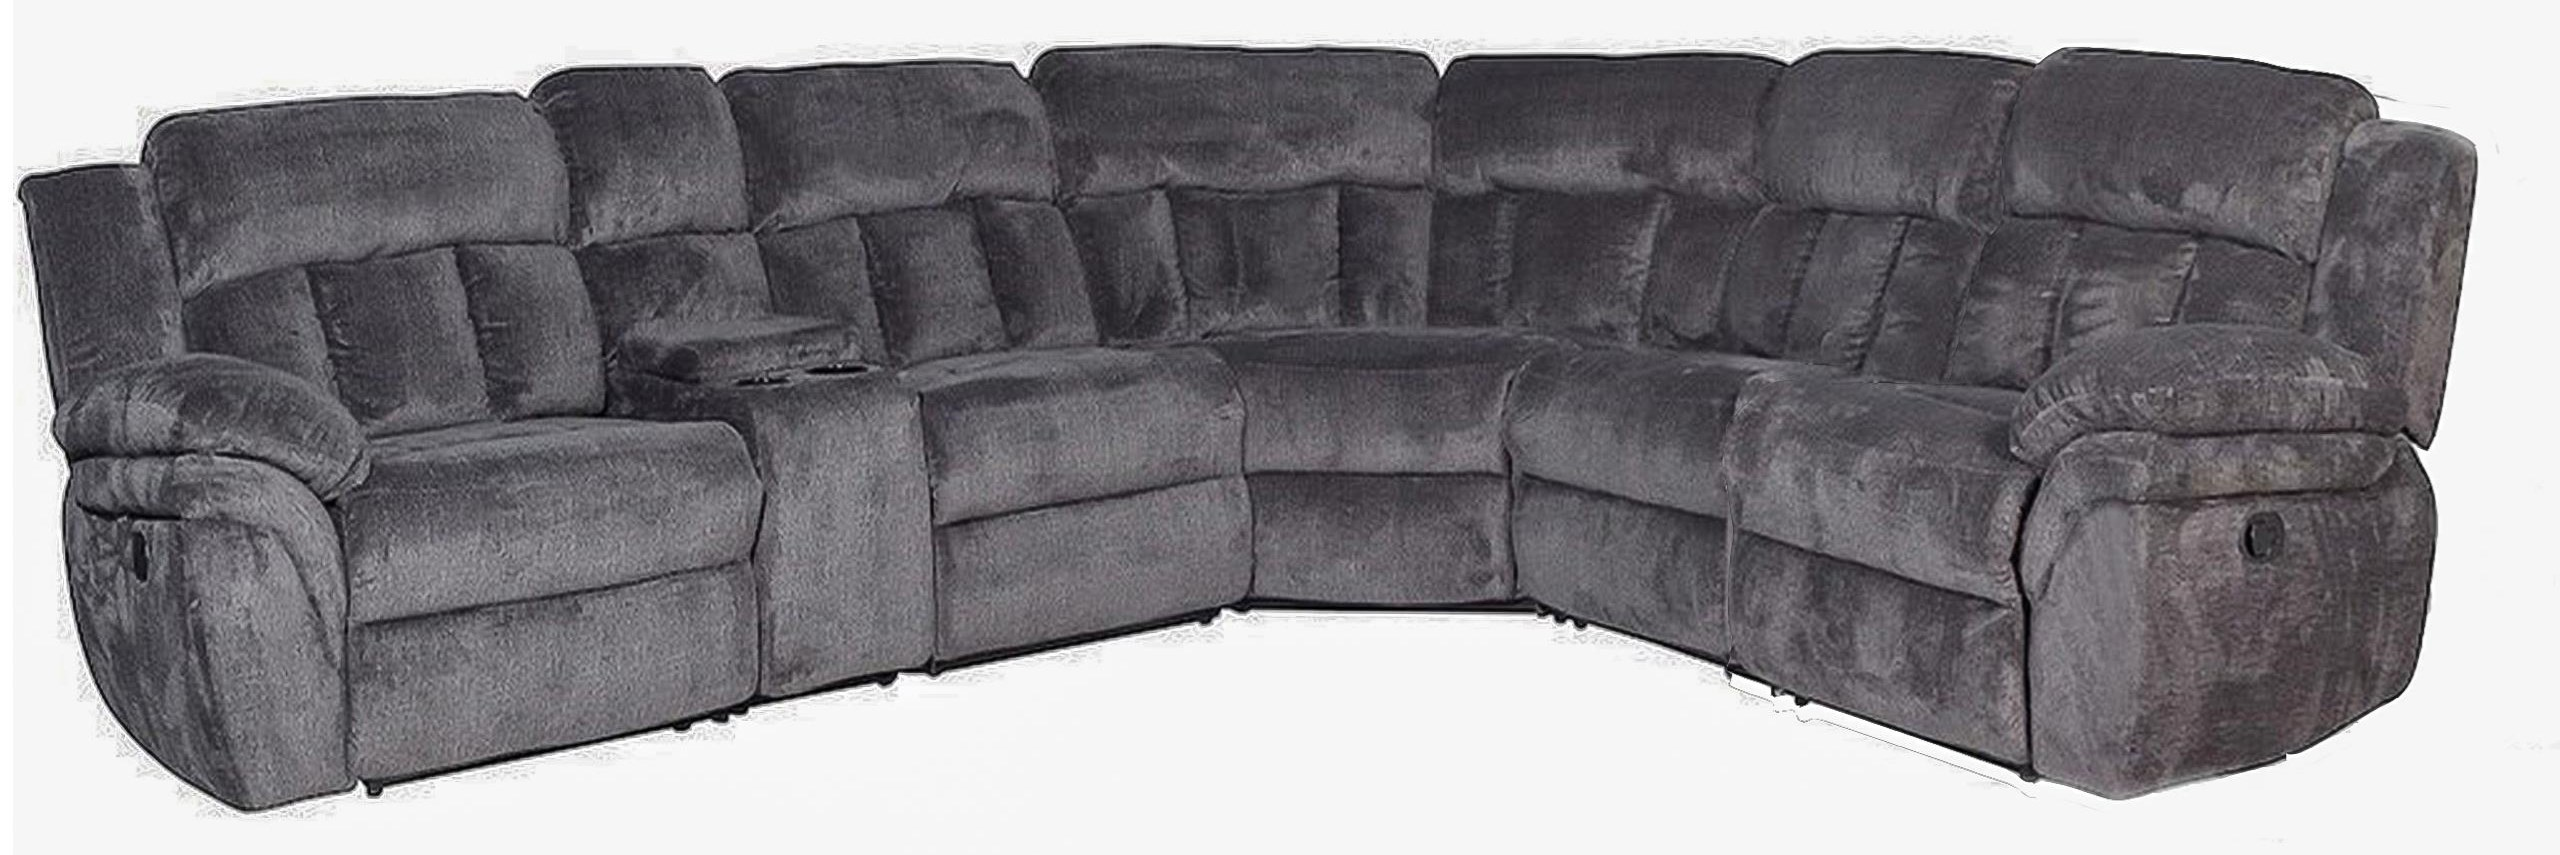 4-Seat Reclining Sectional Sofa w/ Cupholder